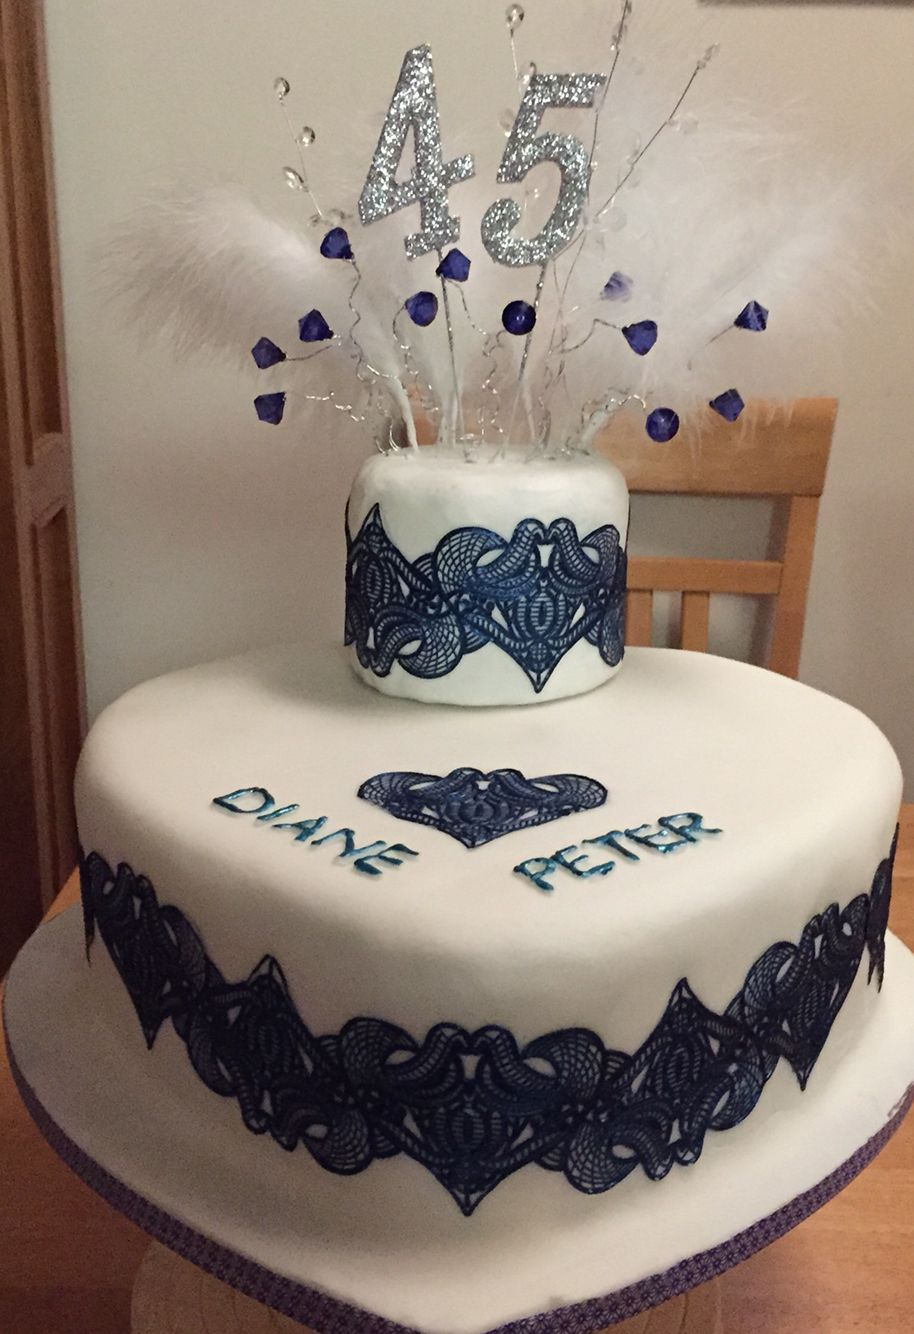 Cake For My Mum And Dads 45th Wedding Anniversary Using Lace The First